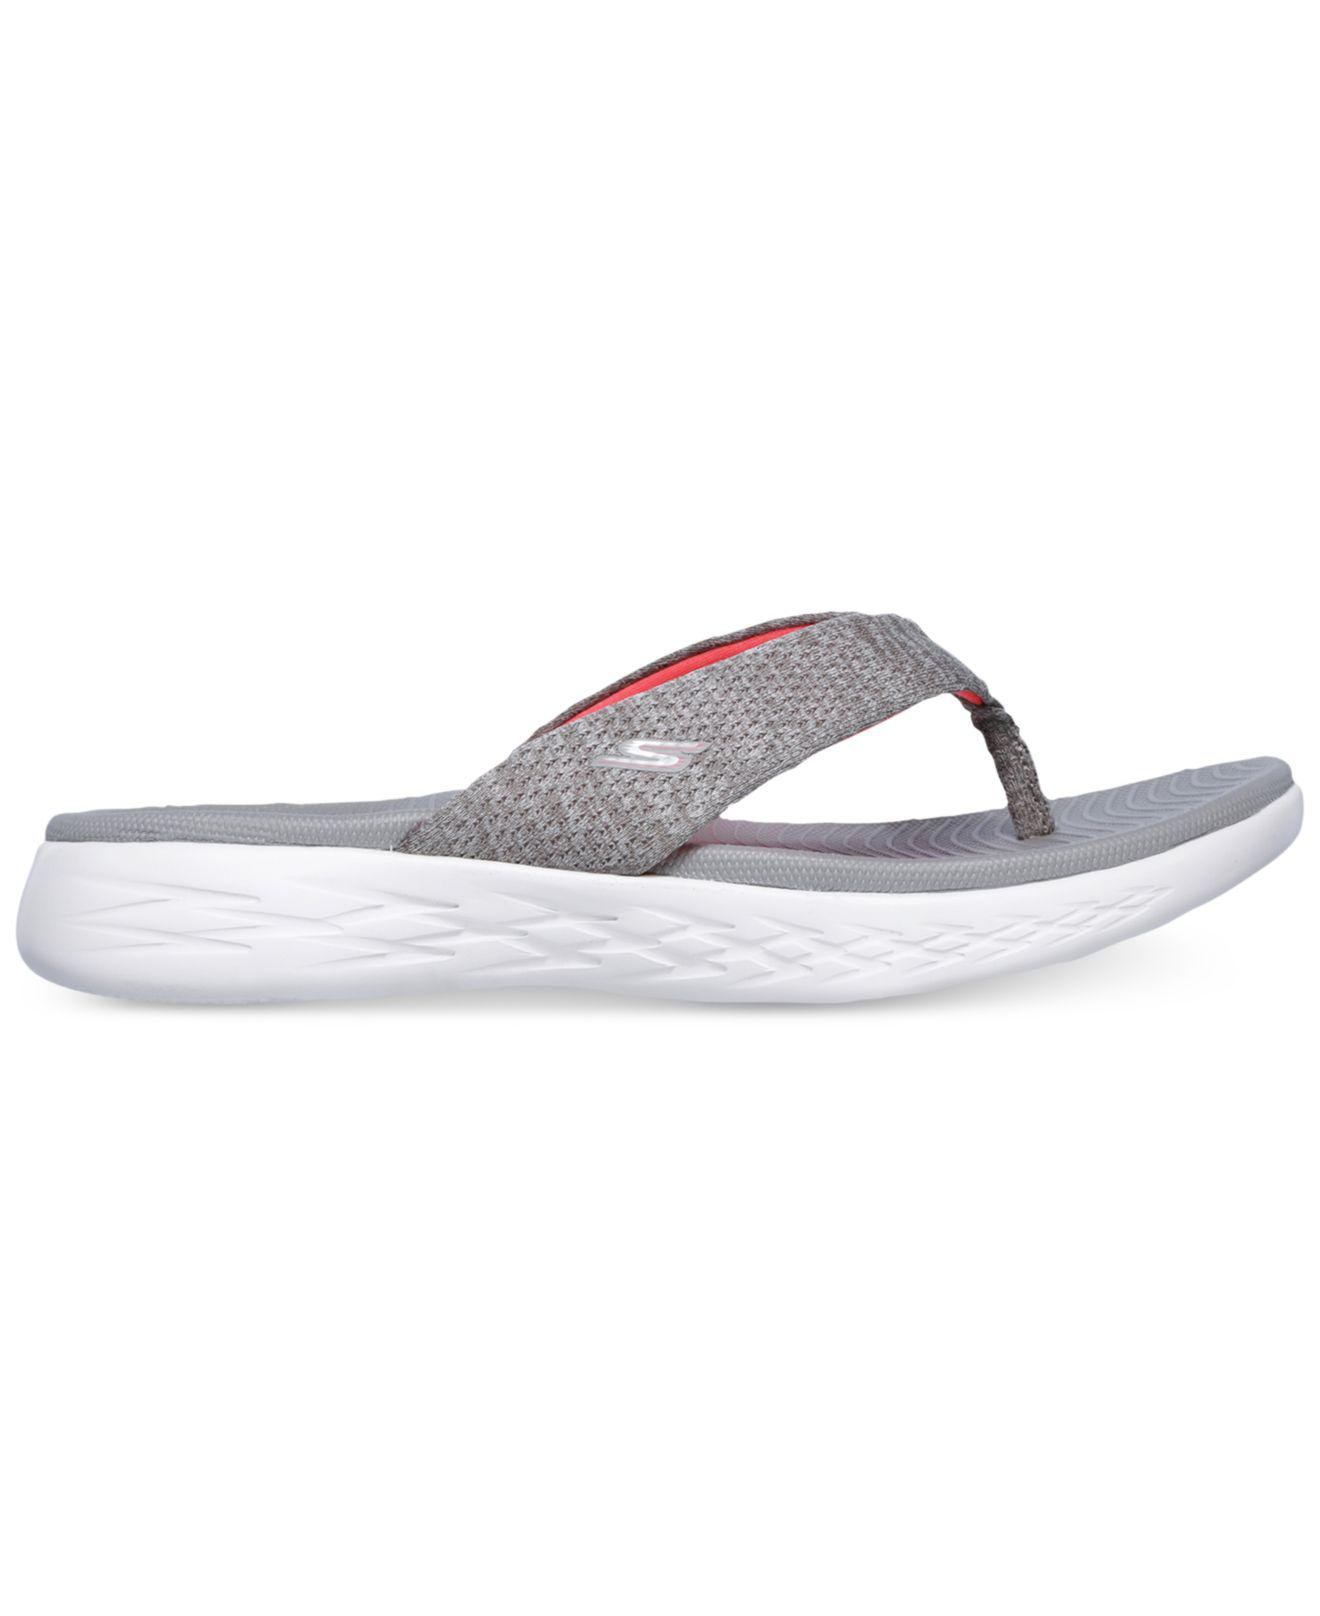 d0010a59 Skechers On The Go 600 - Preferred Athletic Thong Flip Flop Sandals From  Finish Line in Gray - Save 57% - Lyst